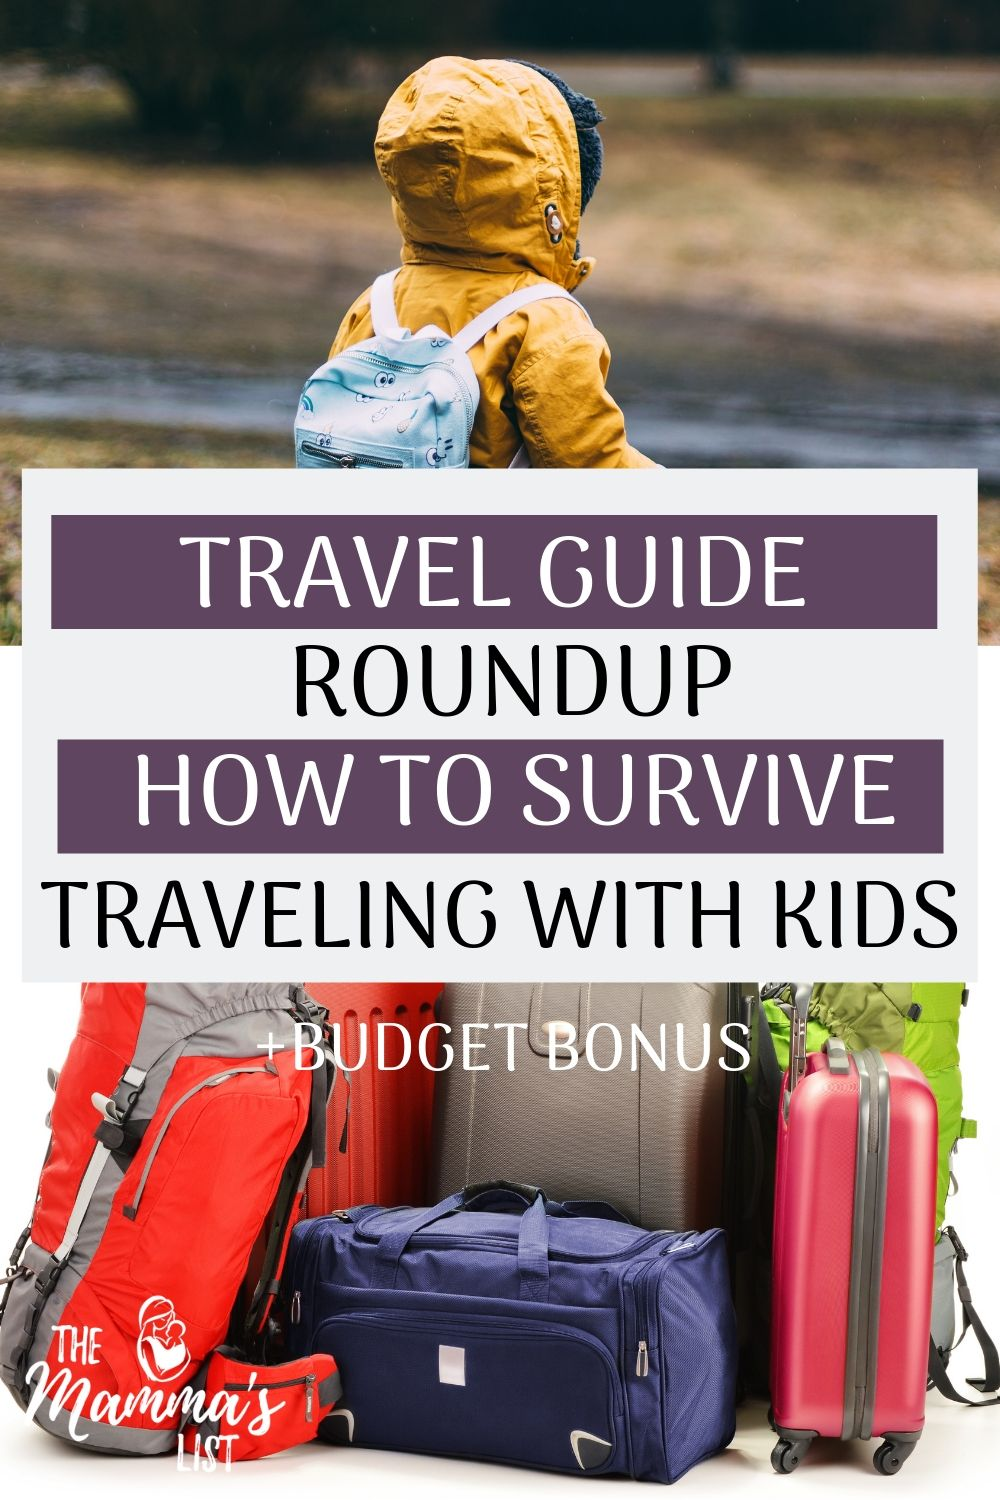 Traveling With Kids Travel With Kids Toddler Travel Kids Budget